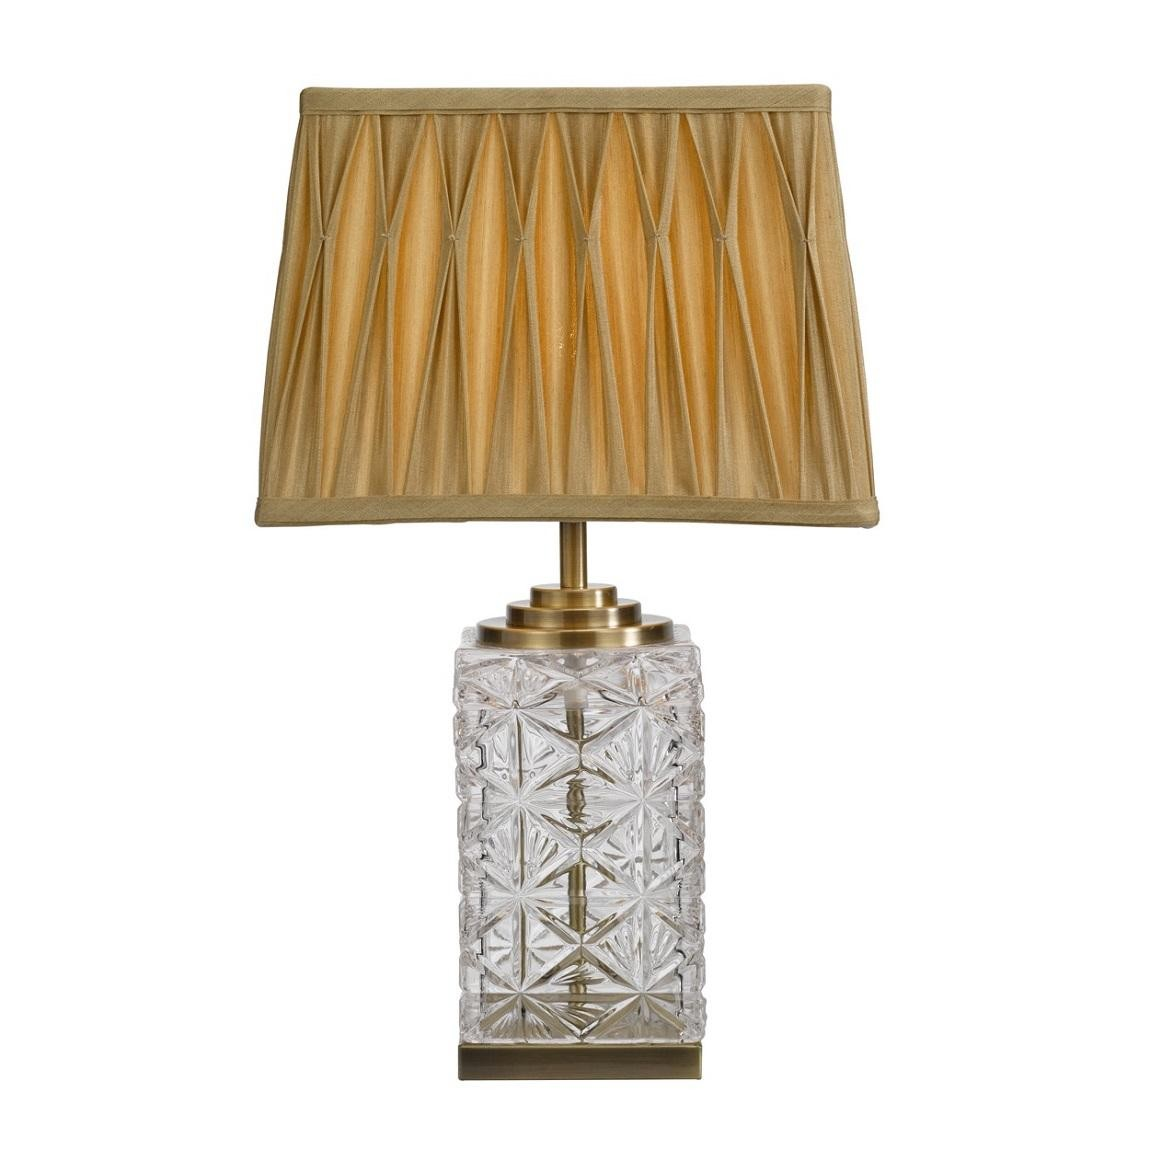 Molly-Table-Lamp.jpg